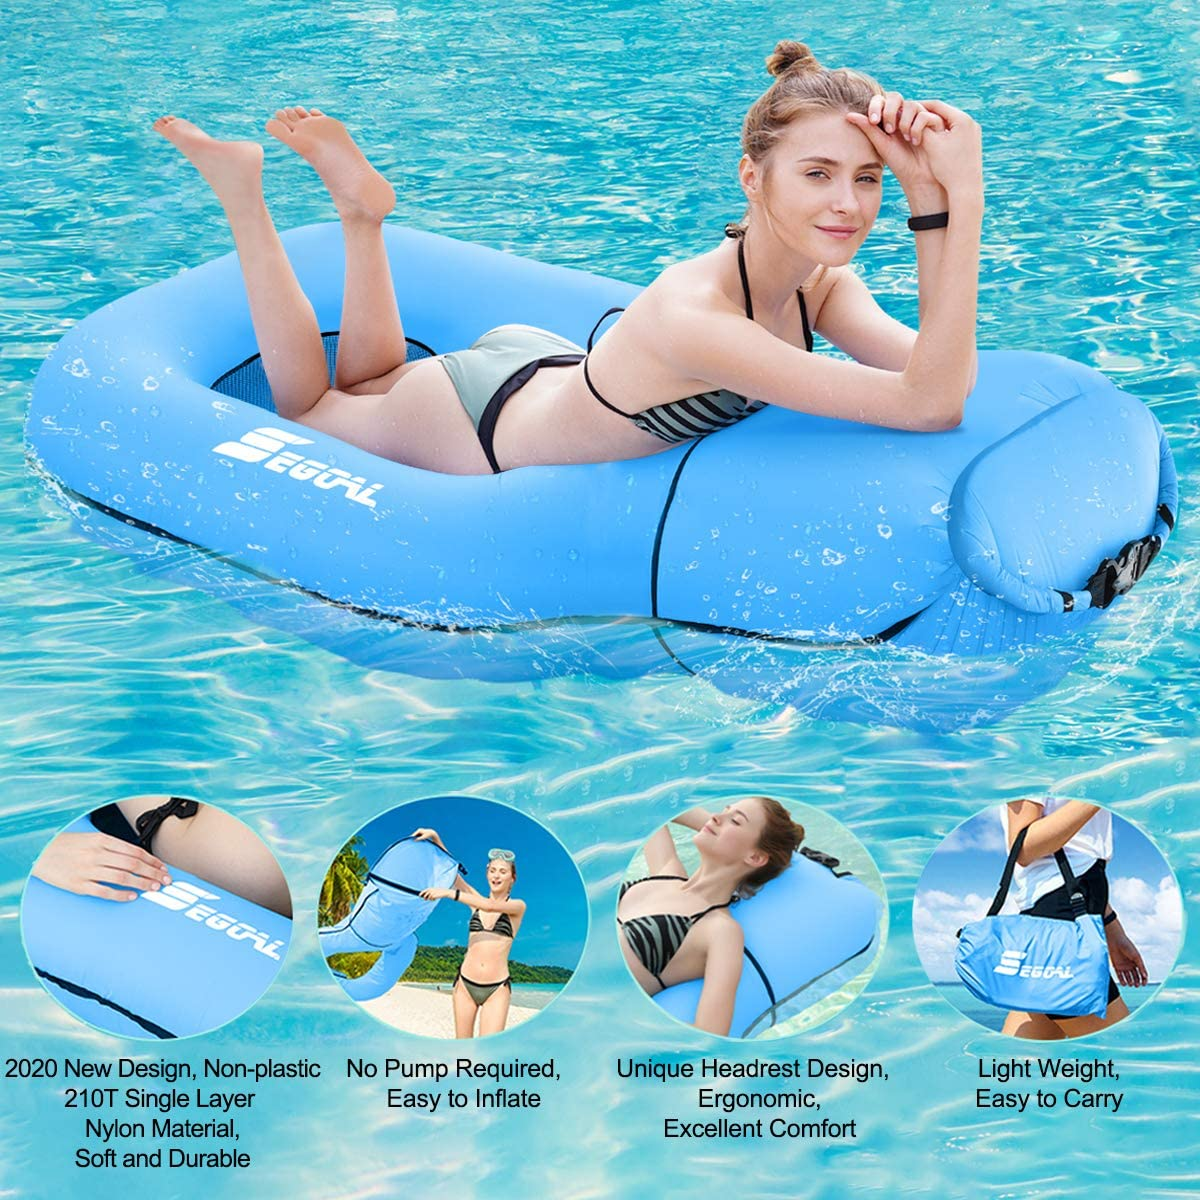 2020 Pool Floats Inflatable Floating Lounger Chair Water Hammock Raft Swimming Ring Pool Toy for Adults & Kids, Lightweight Single Layer Nylon Fabric